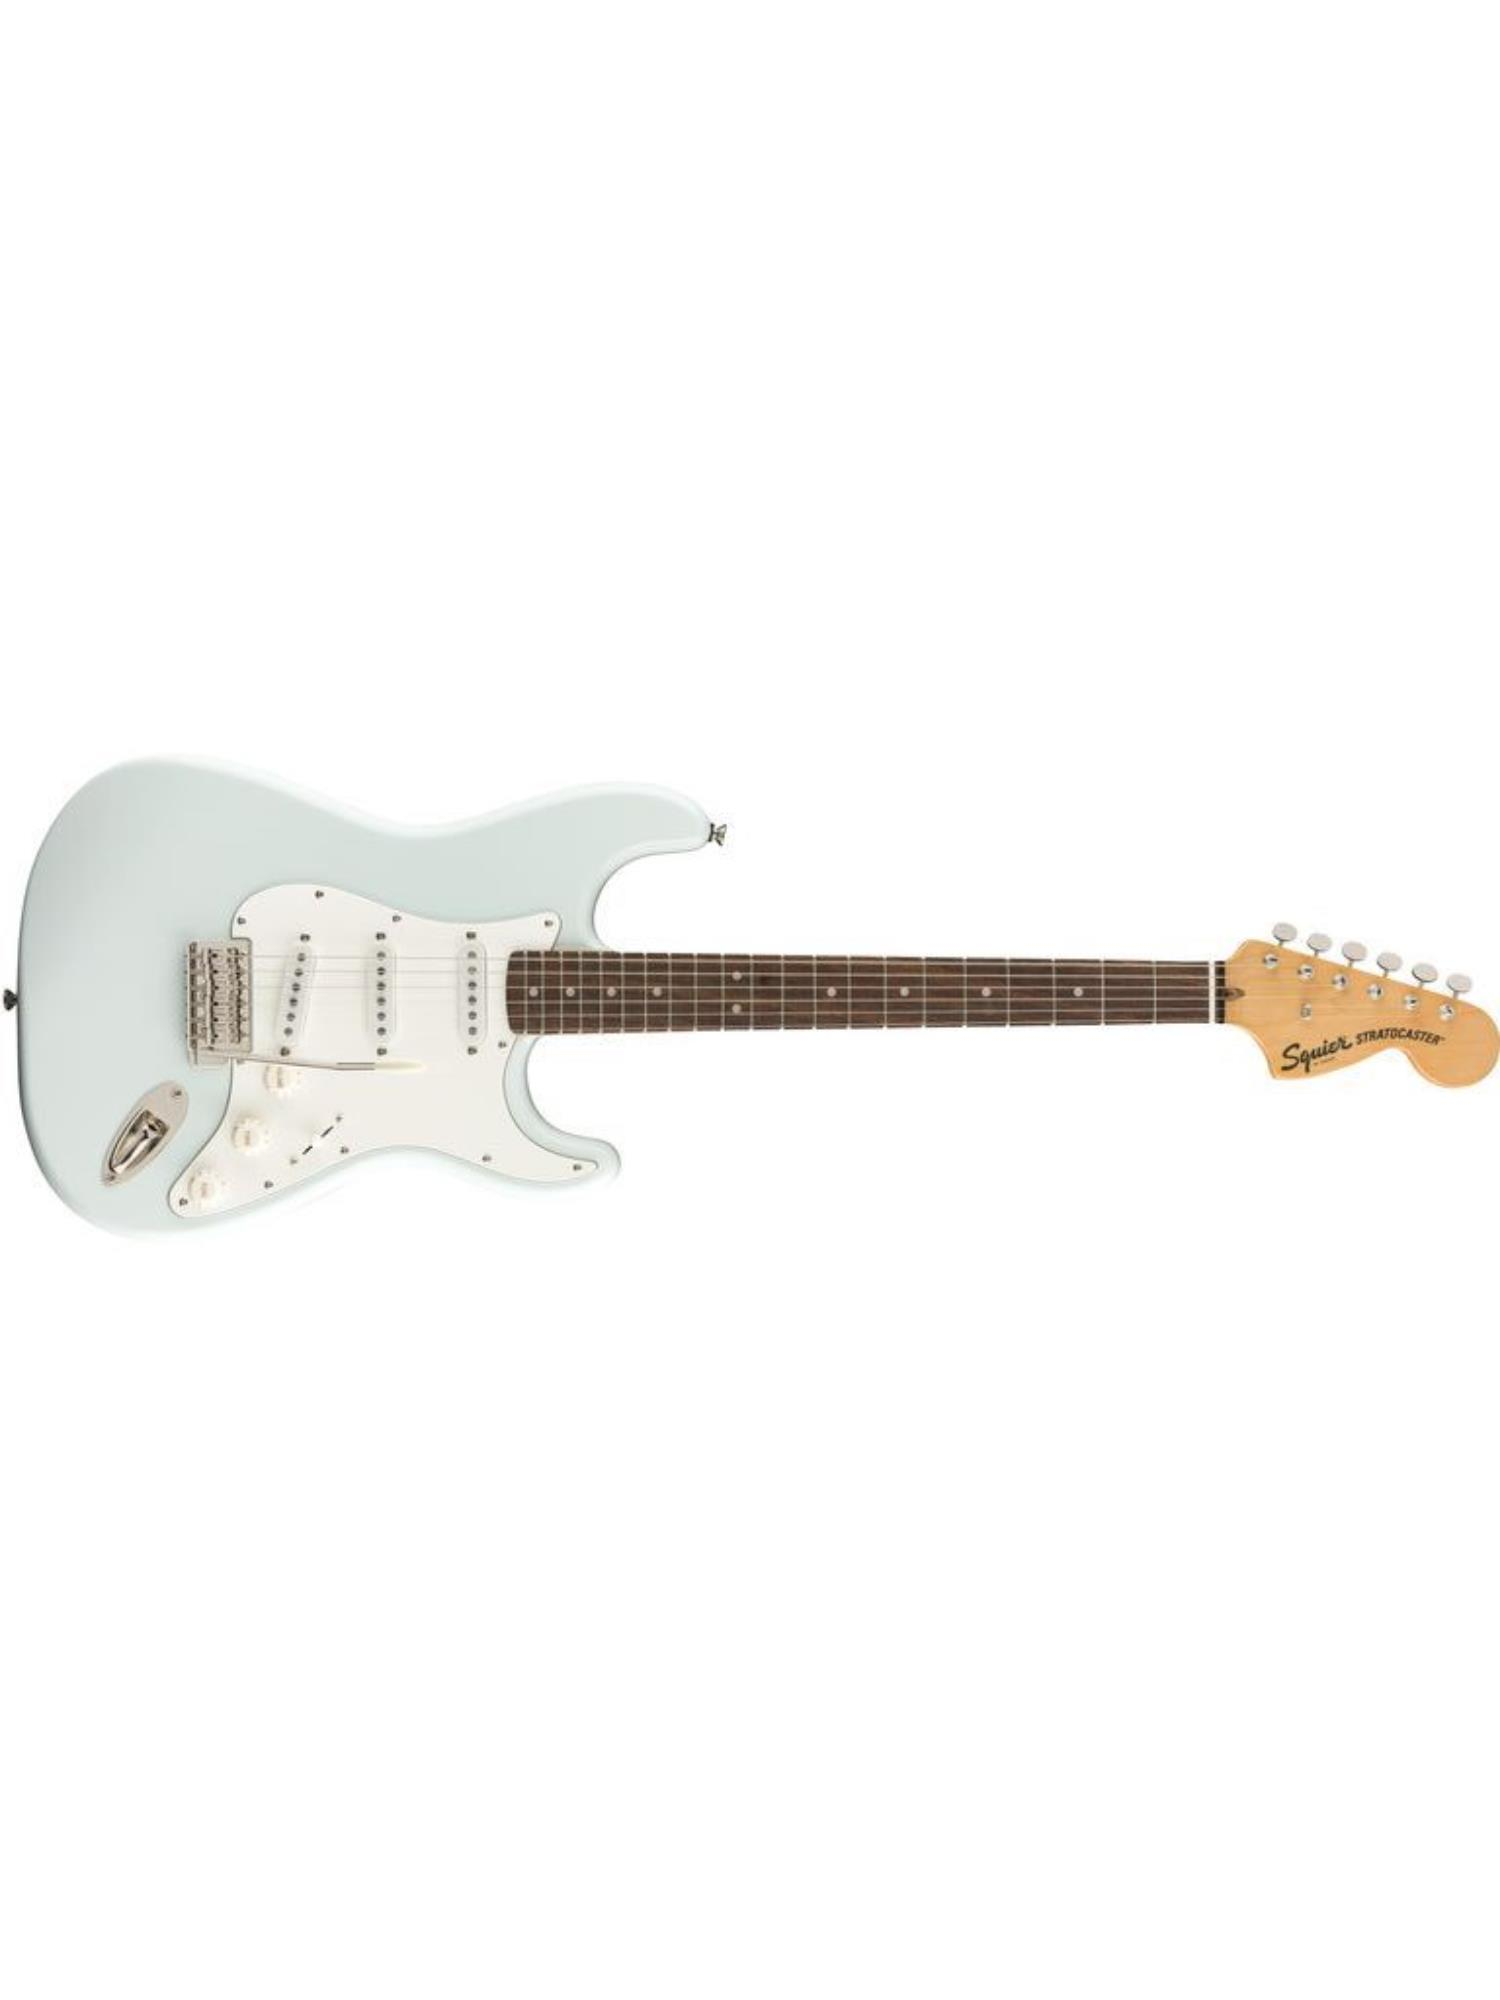 SQUIER-FSR-CLASSIC-VIBE-70s-STRATOCASTER-LRL-SONIC-BLUE-LIMITED-EDITION-0374020572-sku-24490